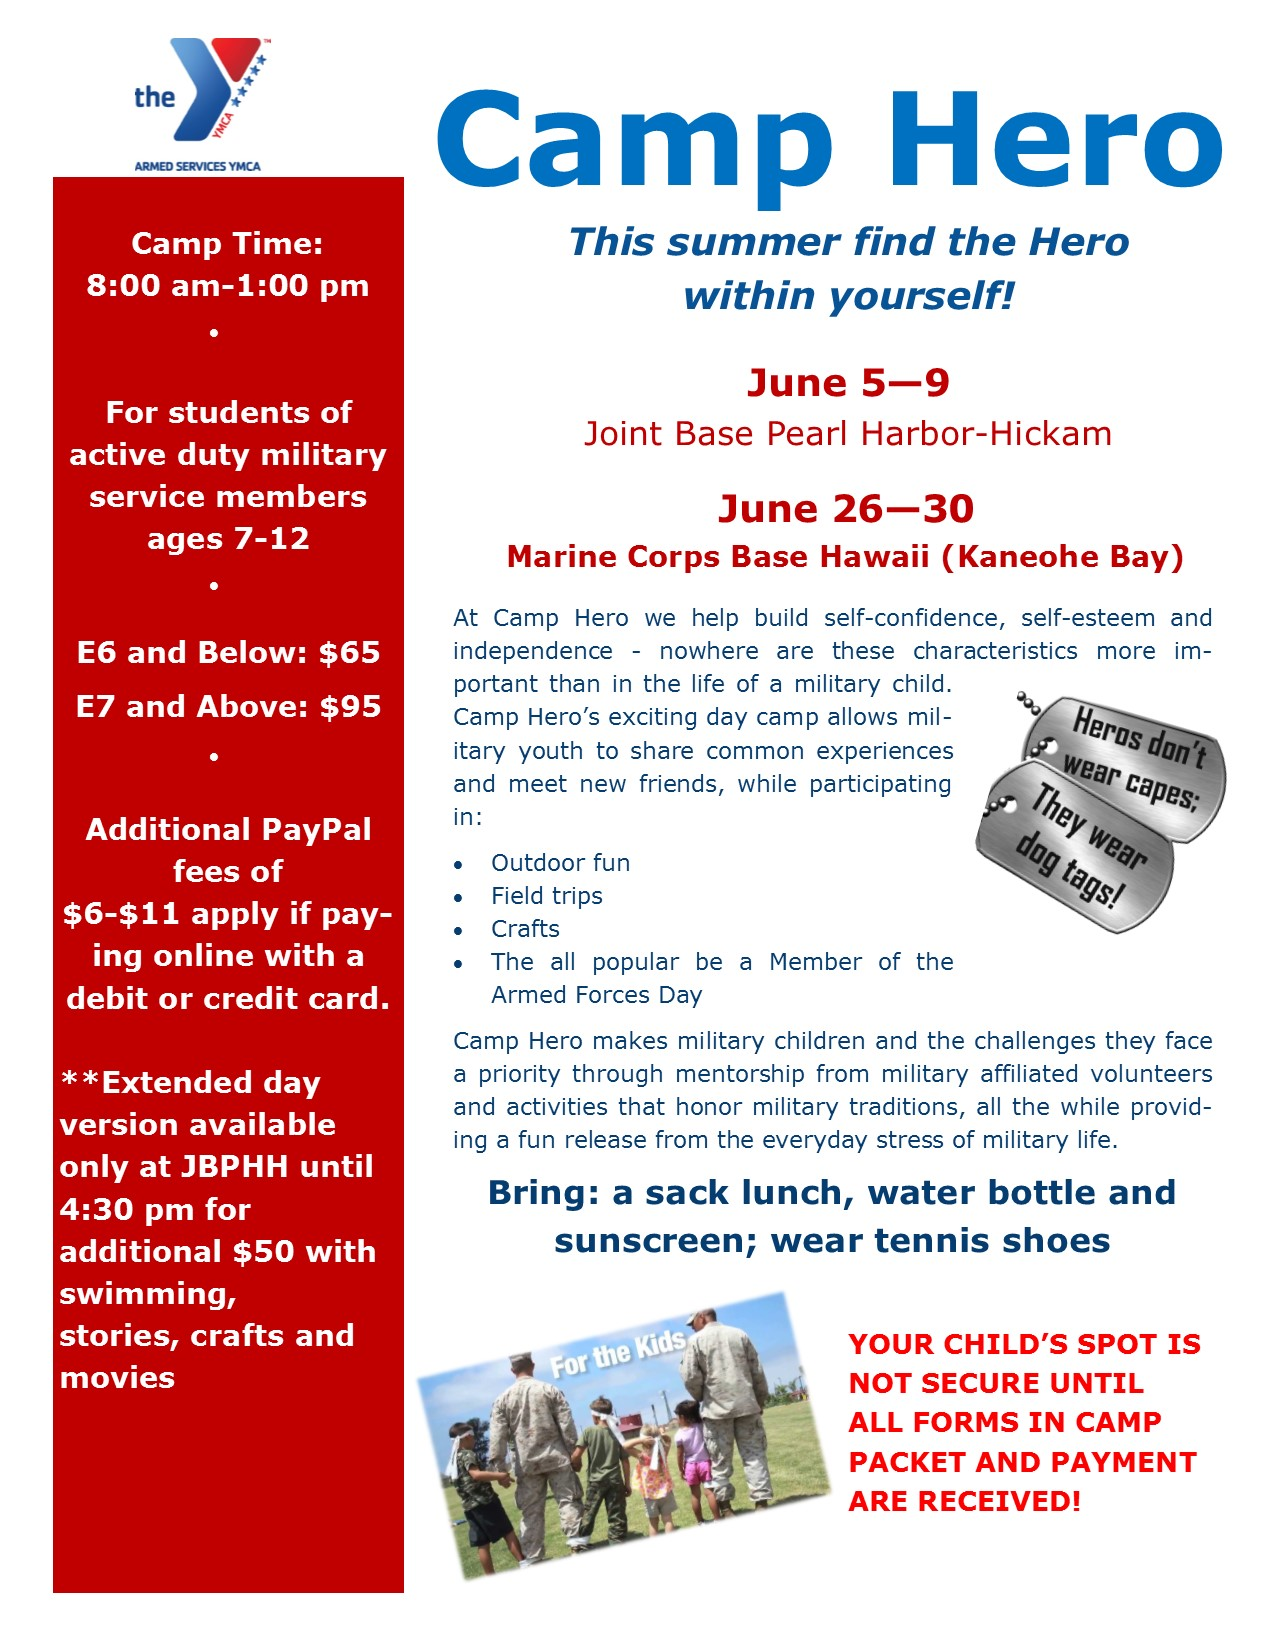 Camp Hero 2017 Flyer Final.jpg